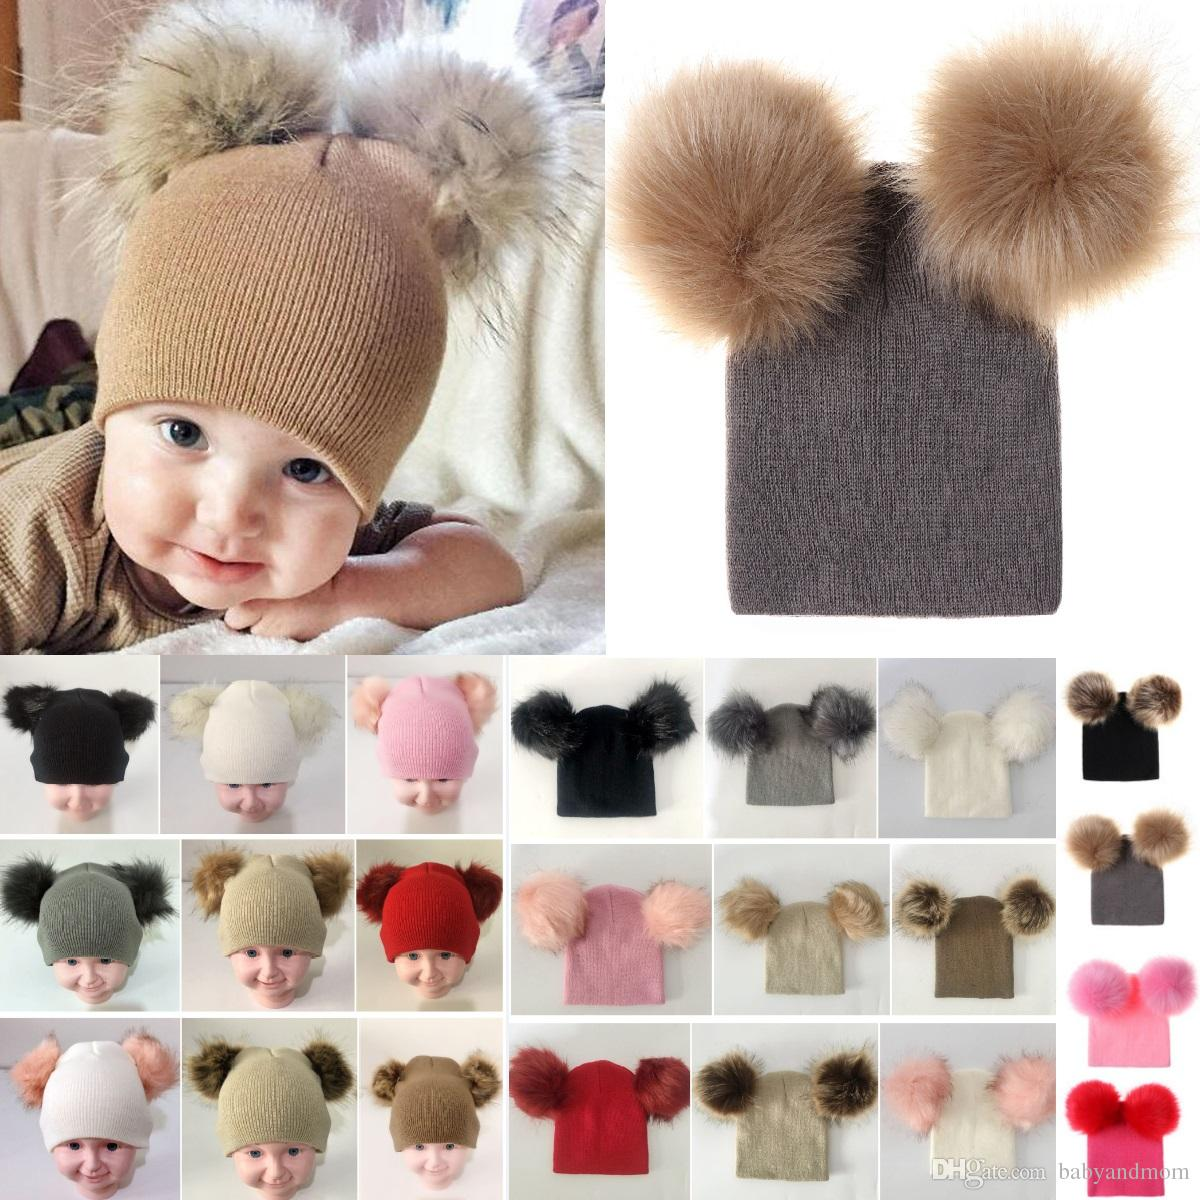 Kids Warm Crochet Hats Toddler Knitted Beanie with 2 Plush Fur Balls Children Pom Poms Cap 17 colors